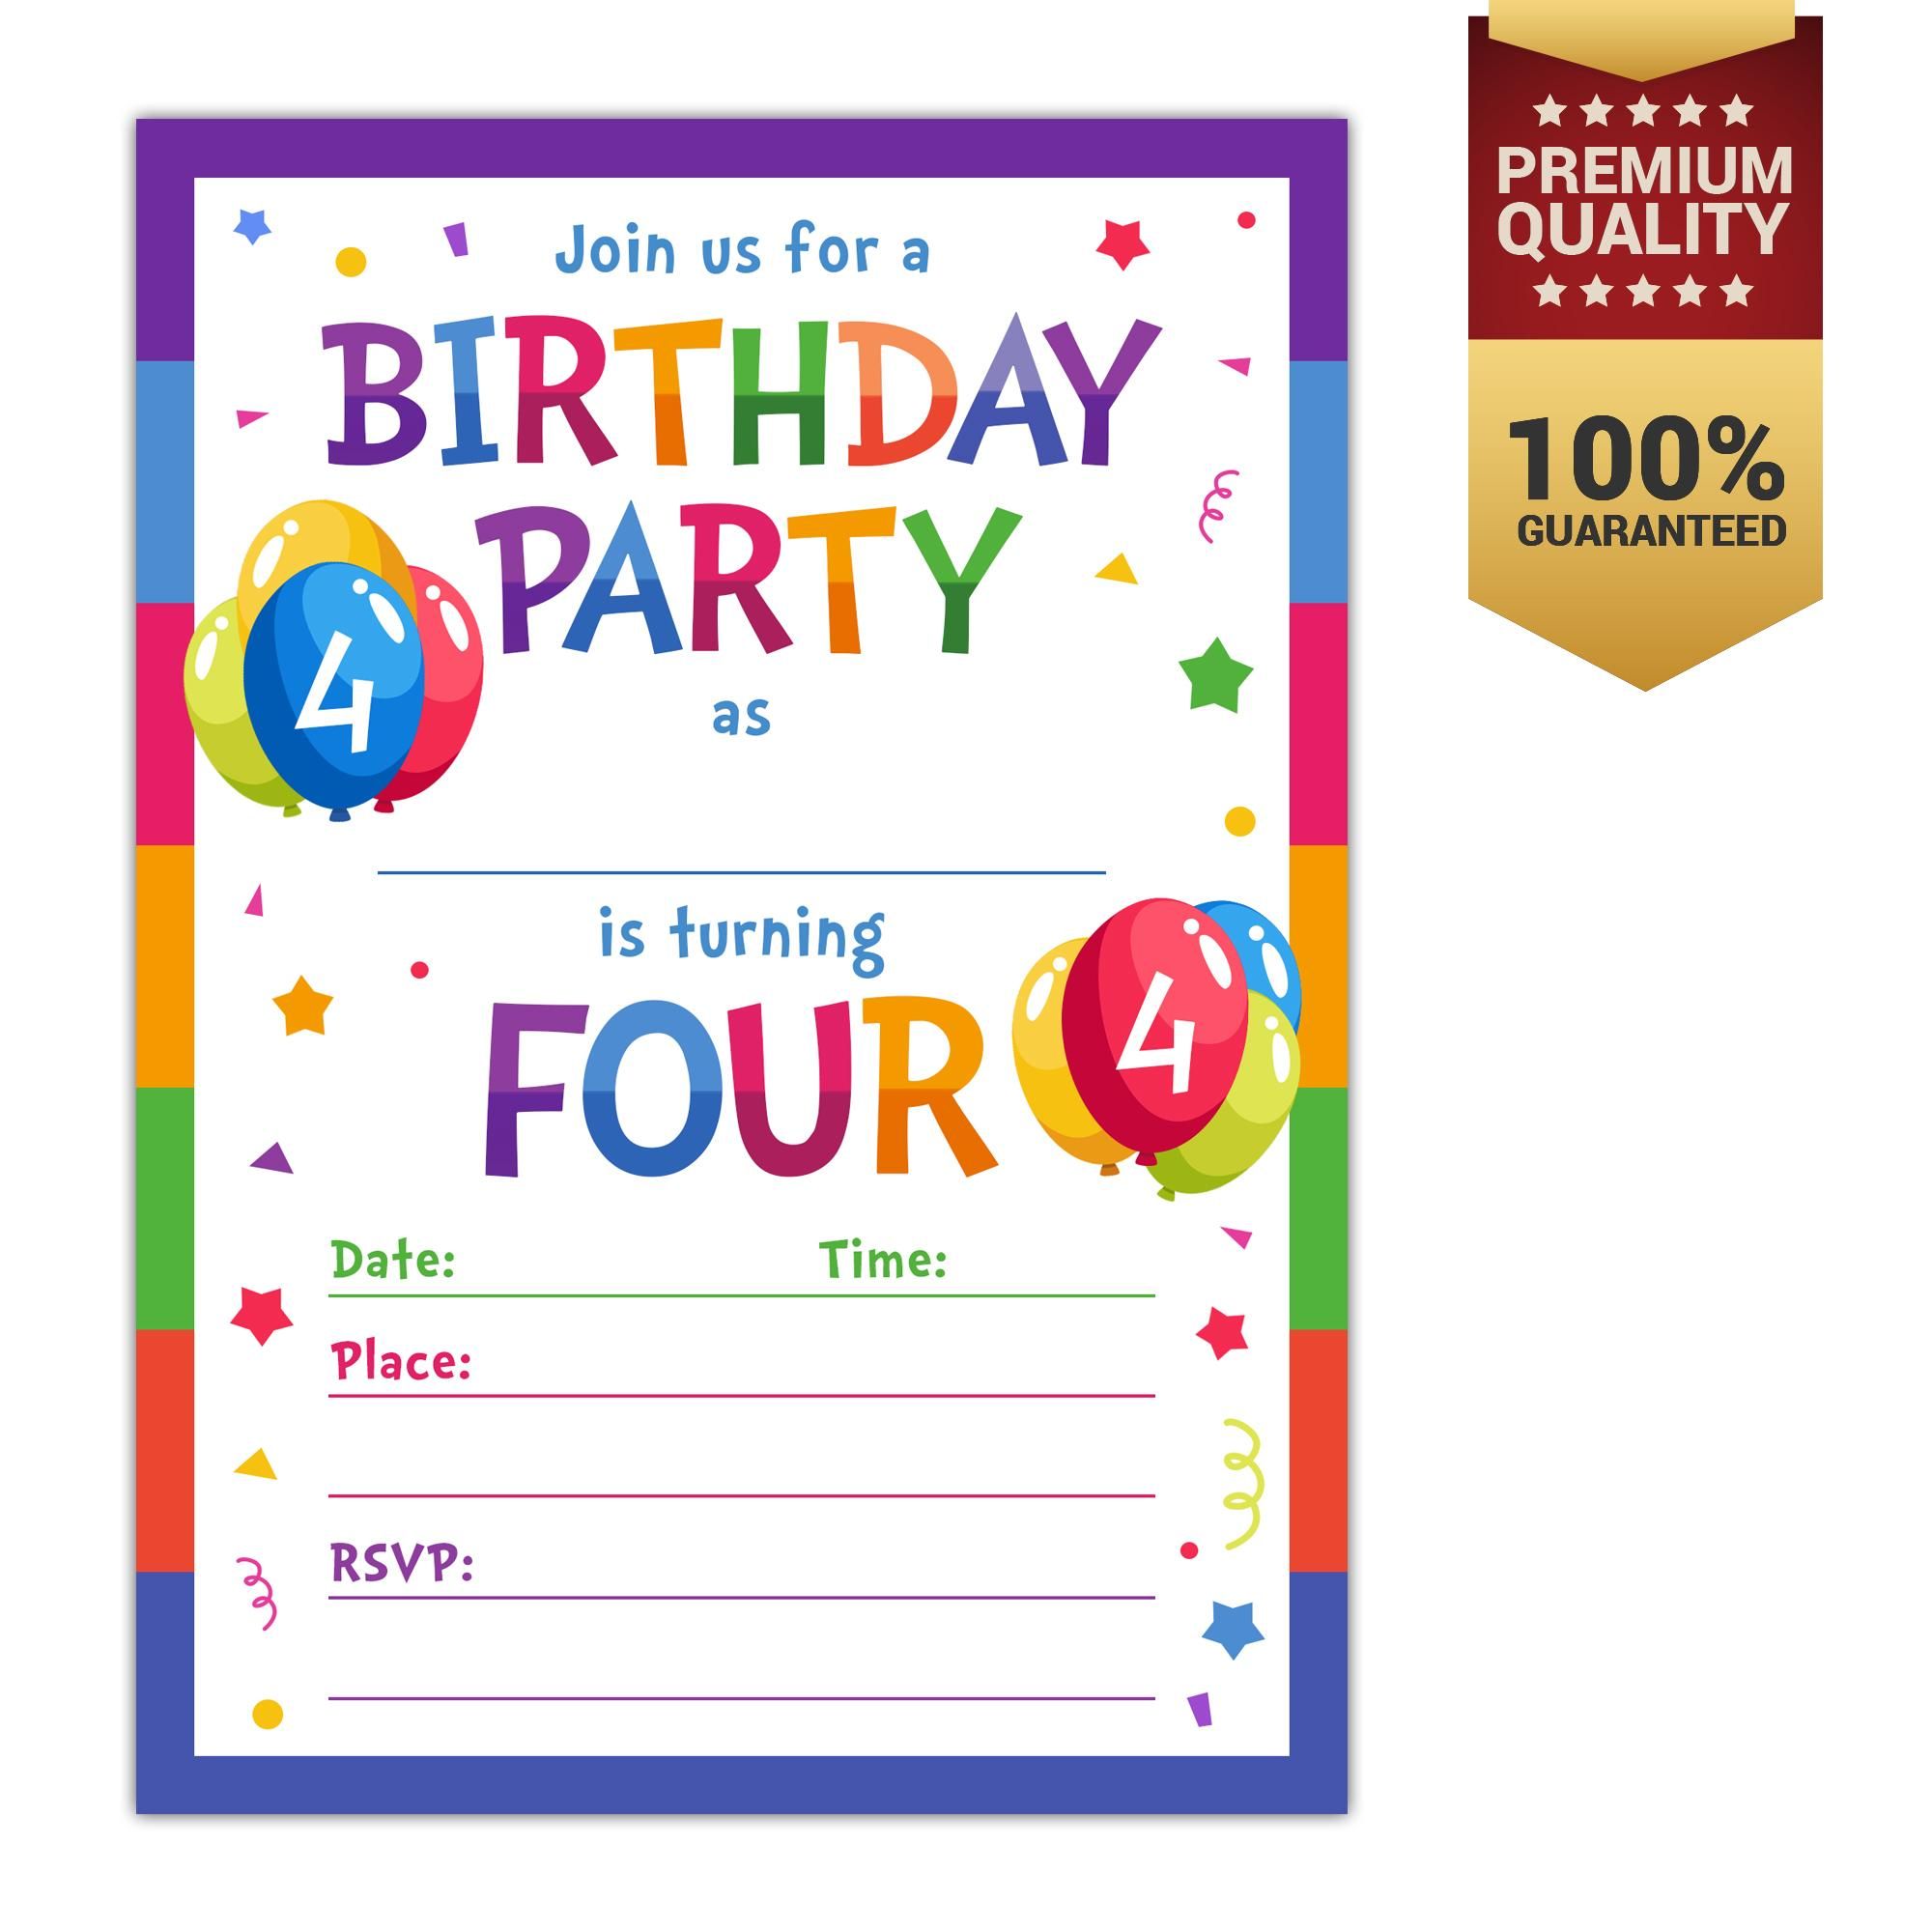 Invitation cards for sale party cards online brands prices 4th birthday party invitations with envelopes 10 count 4 year old kids birthday filmwisefo